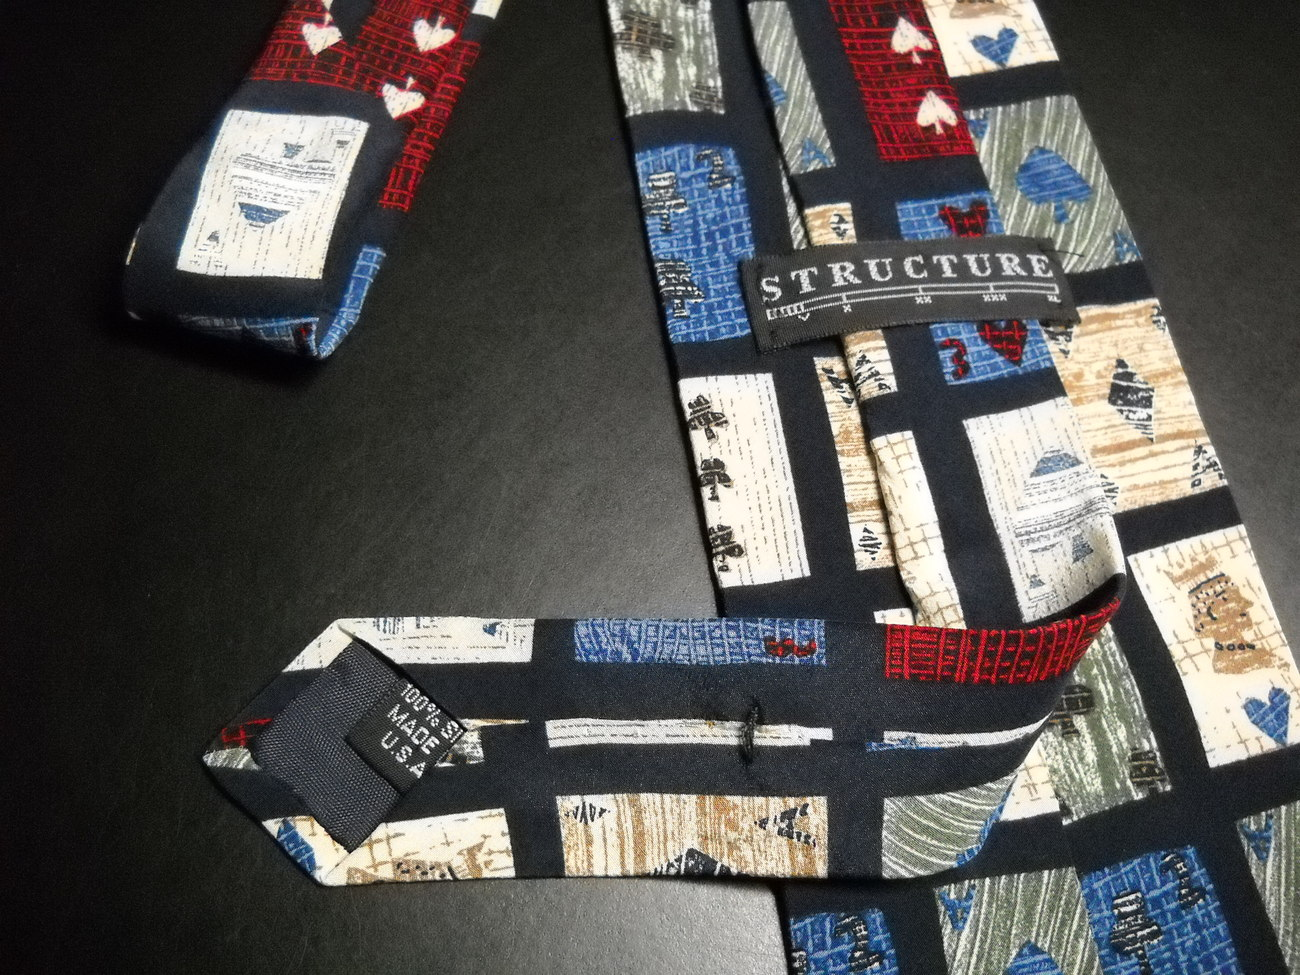 Structure Mens Dress Neck Tie Abtractions of Playing Cards in Whites Reds Blues